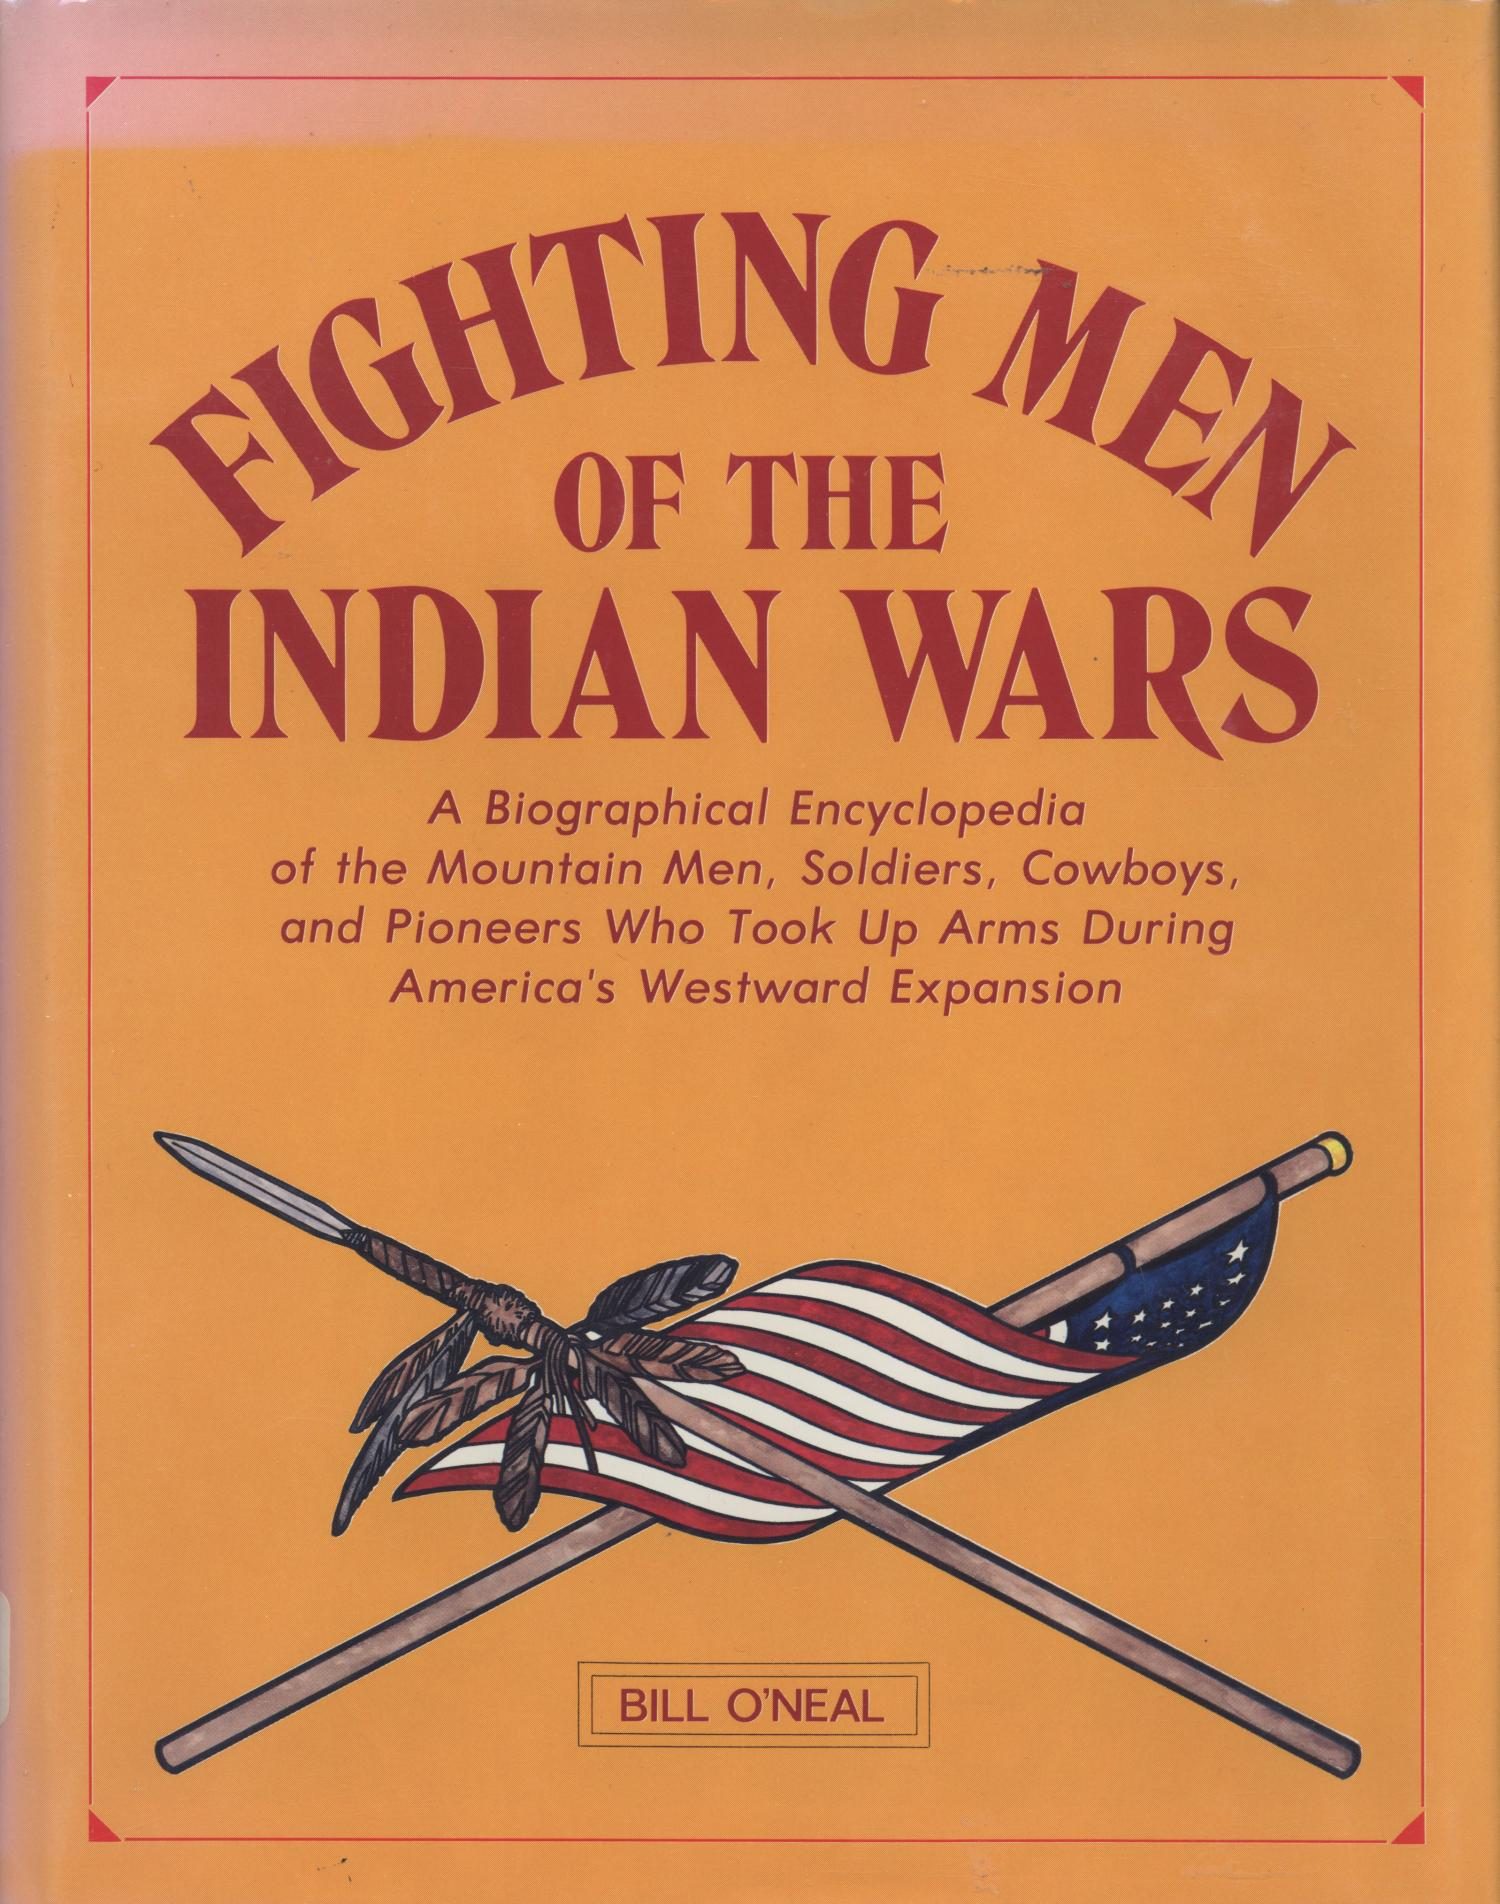 Fighting Men of the Indian Wars: A Biographical Encyclopedia of the Mountain Men, Soldiers, Cowboys, and Pioneers Who Took Up Arms During America's Westward Expansion                                                                                                      Front Cover